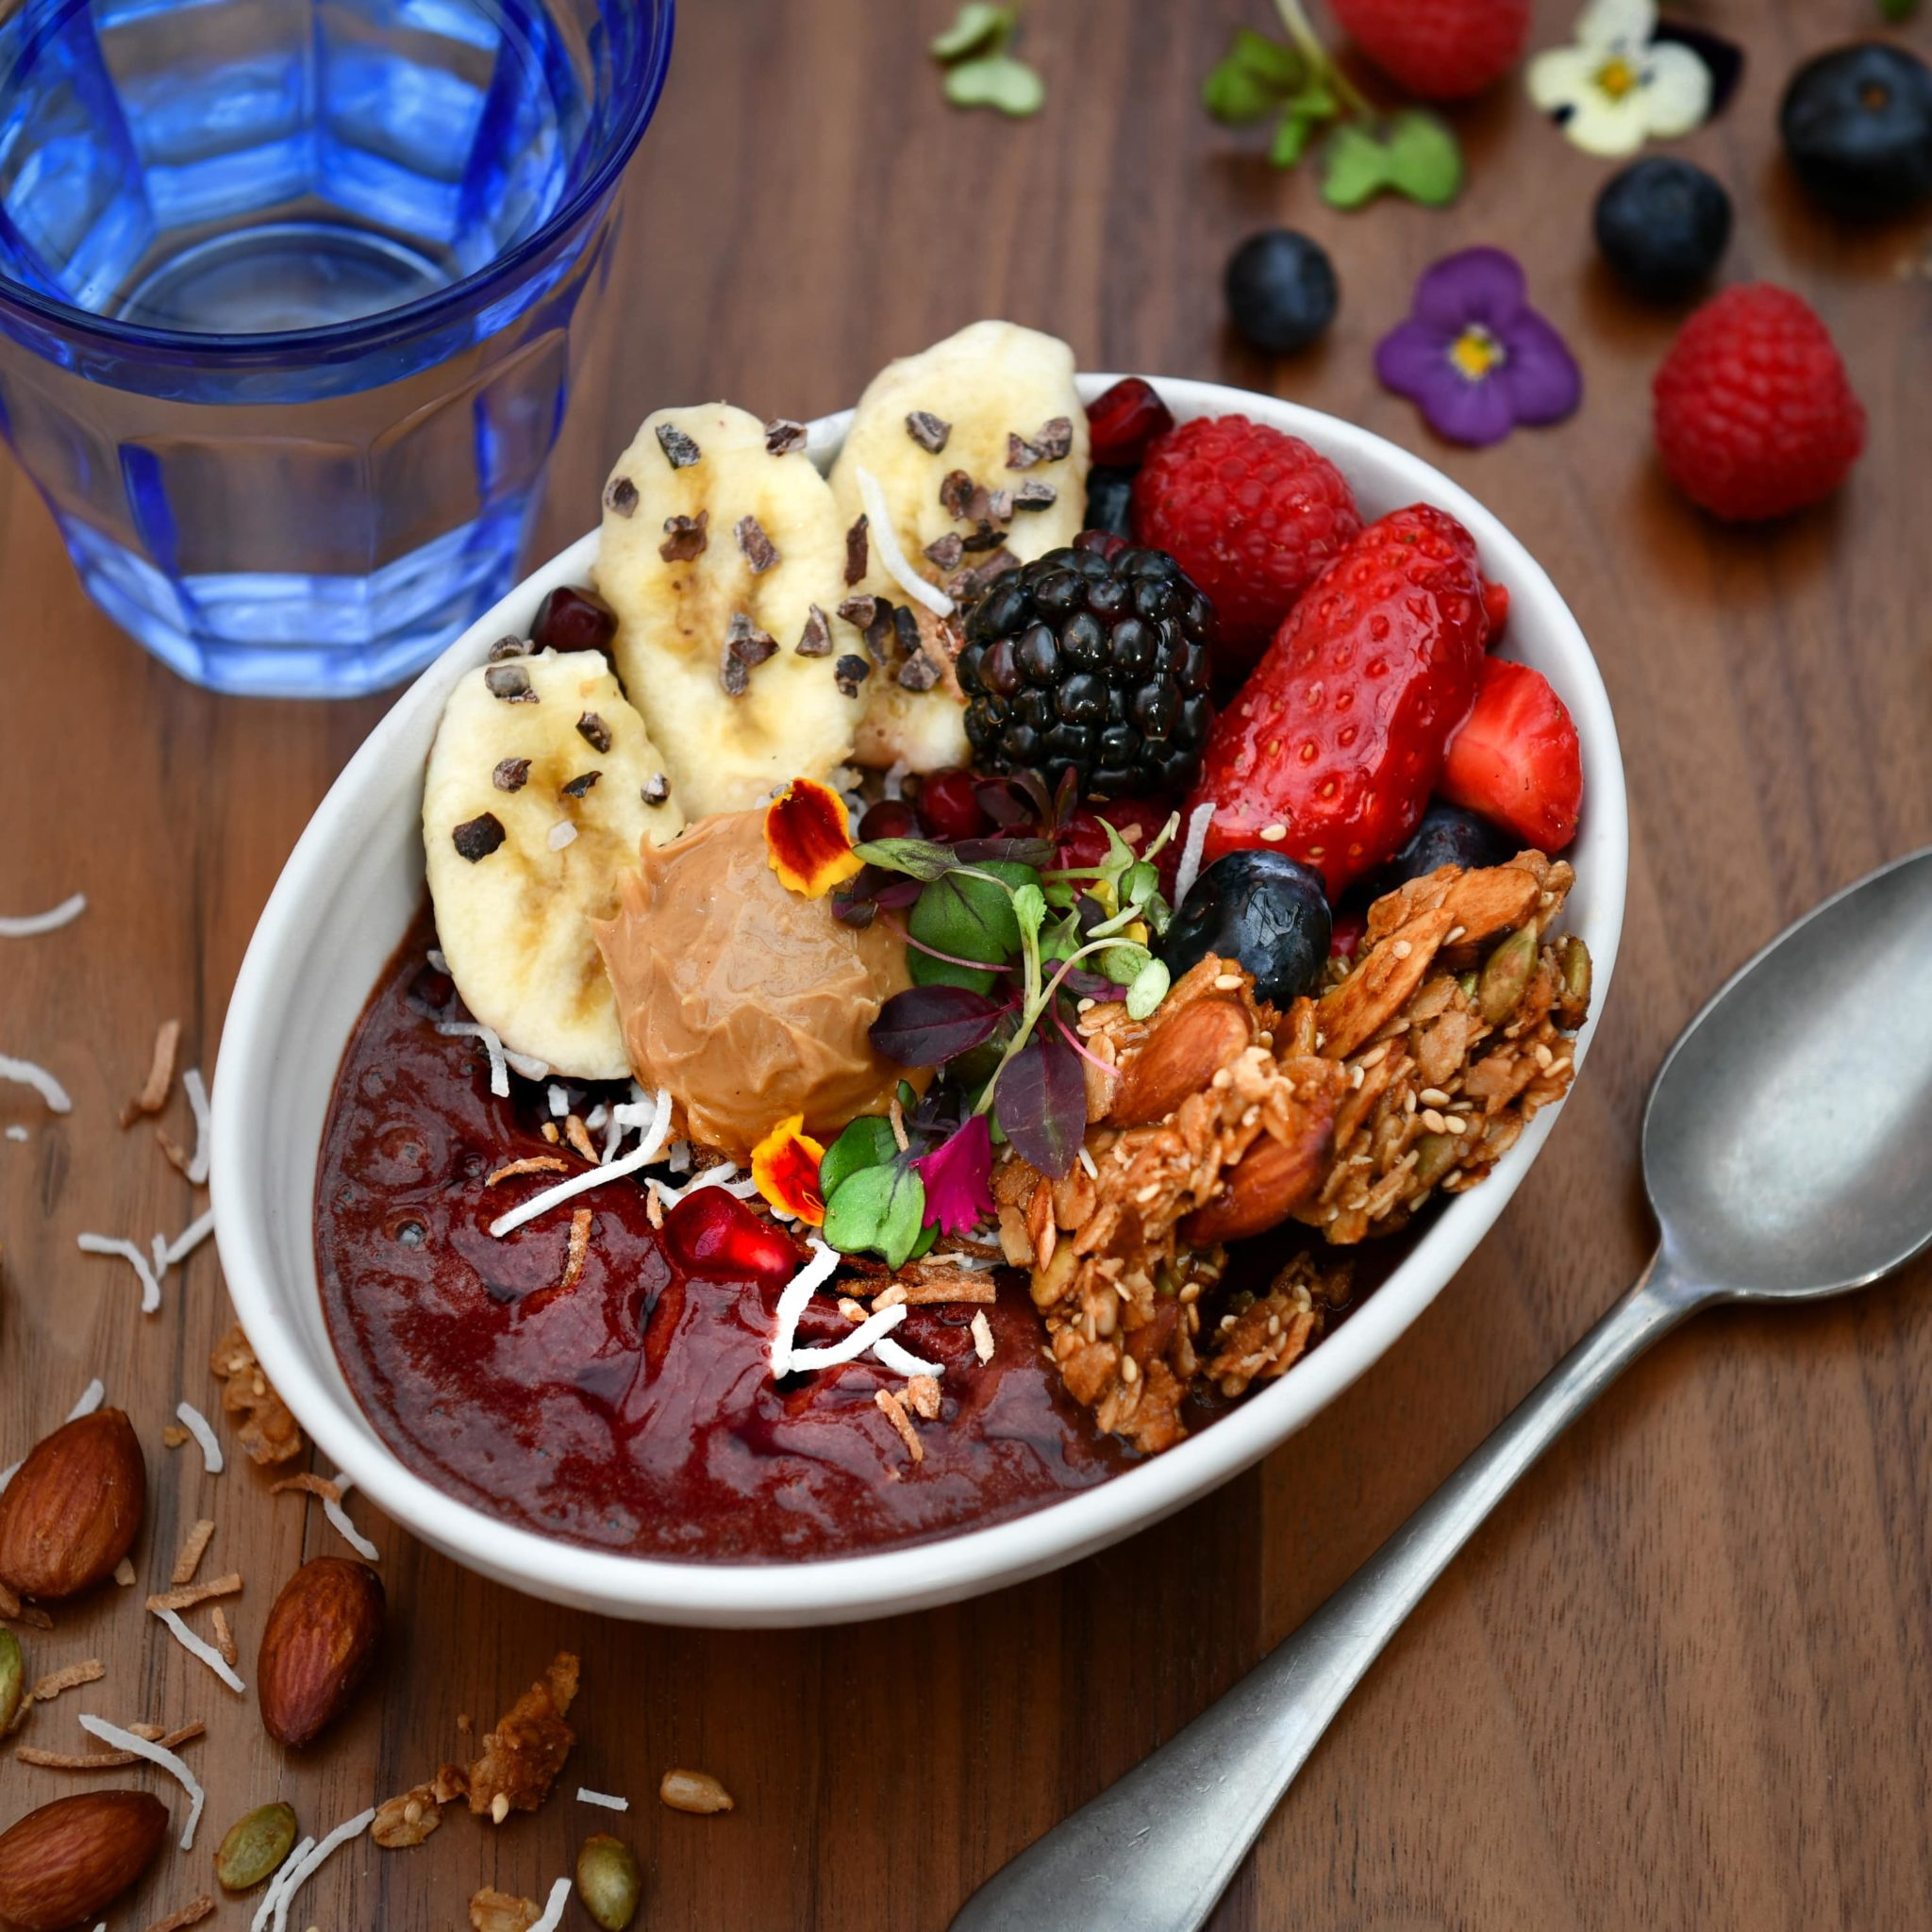 Breakfast Near Me and Winter Park Brunch Menu at The Glass Knife - Acai Bowl